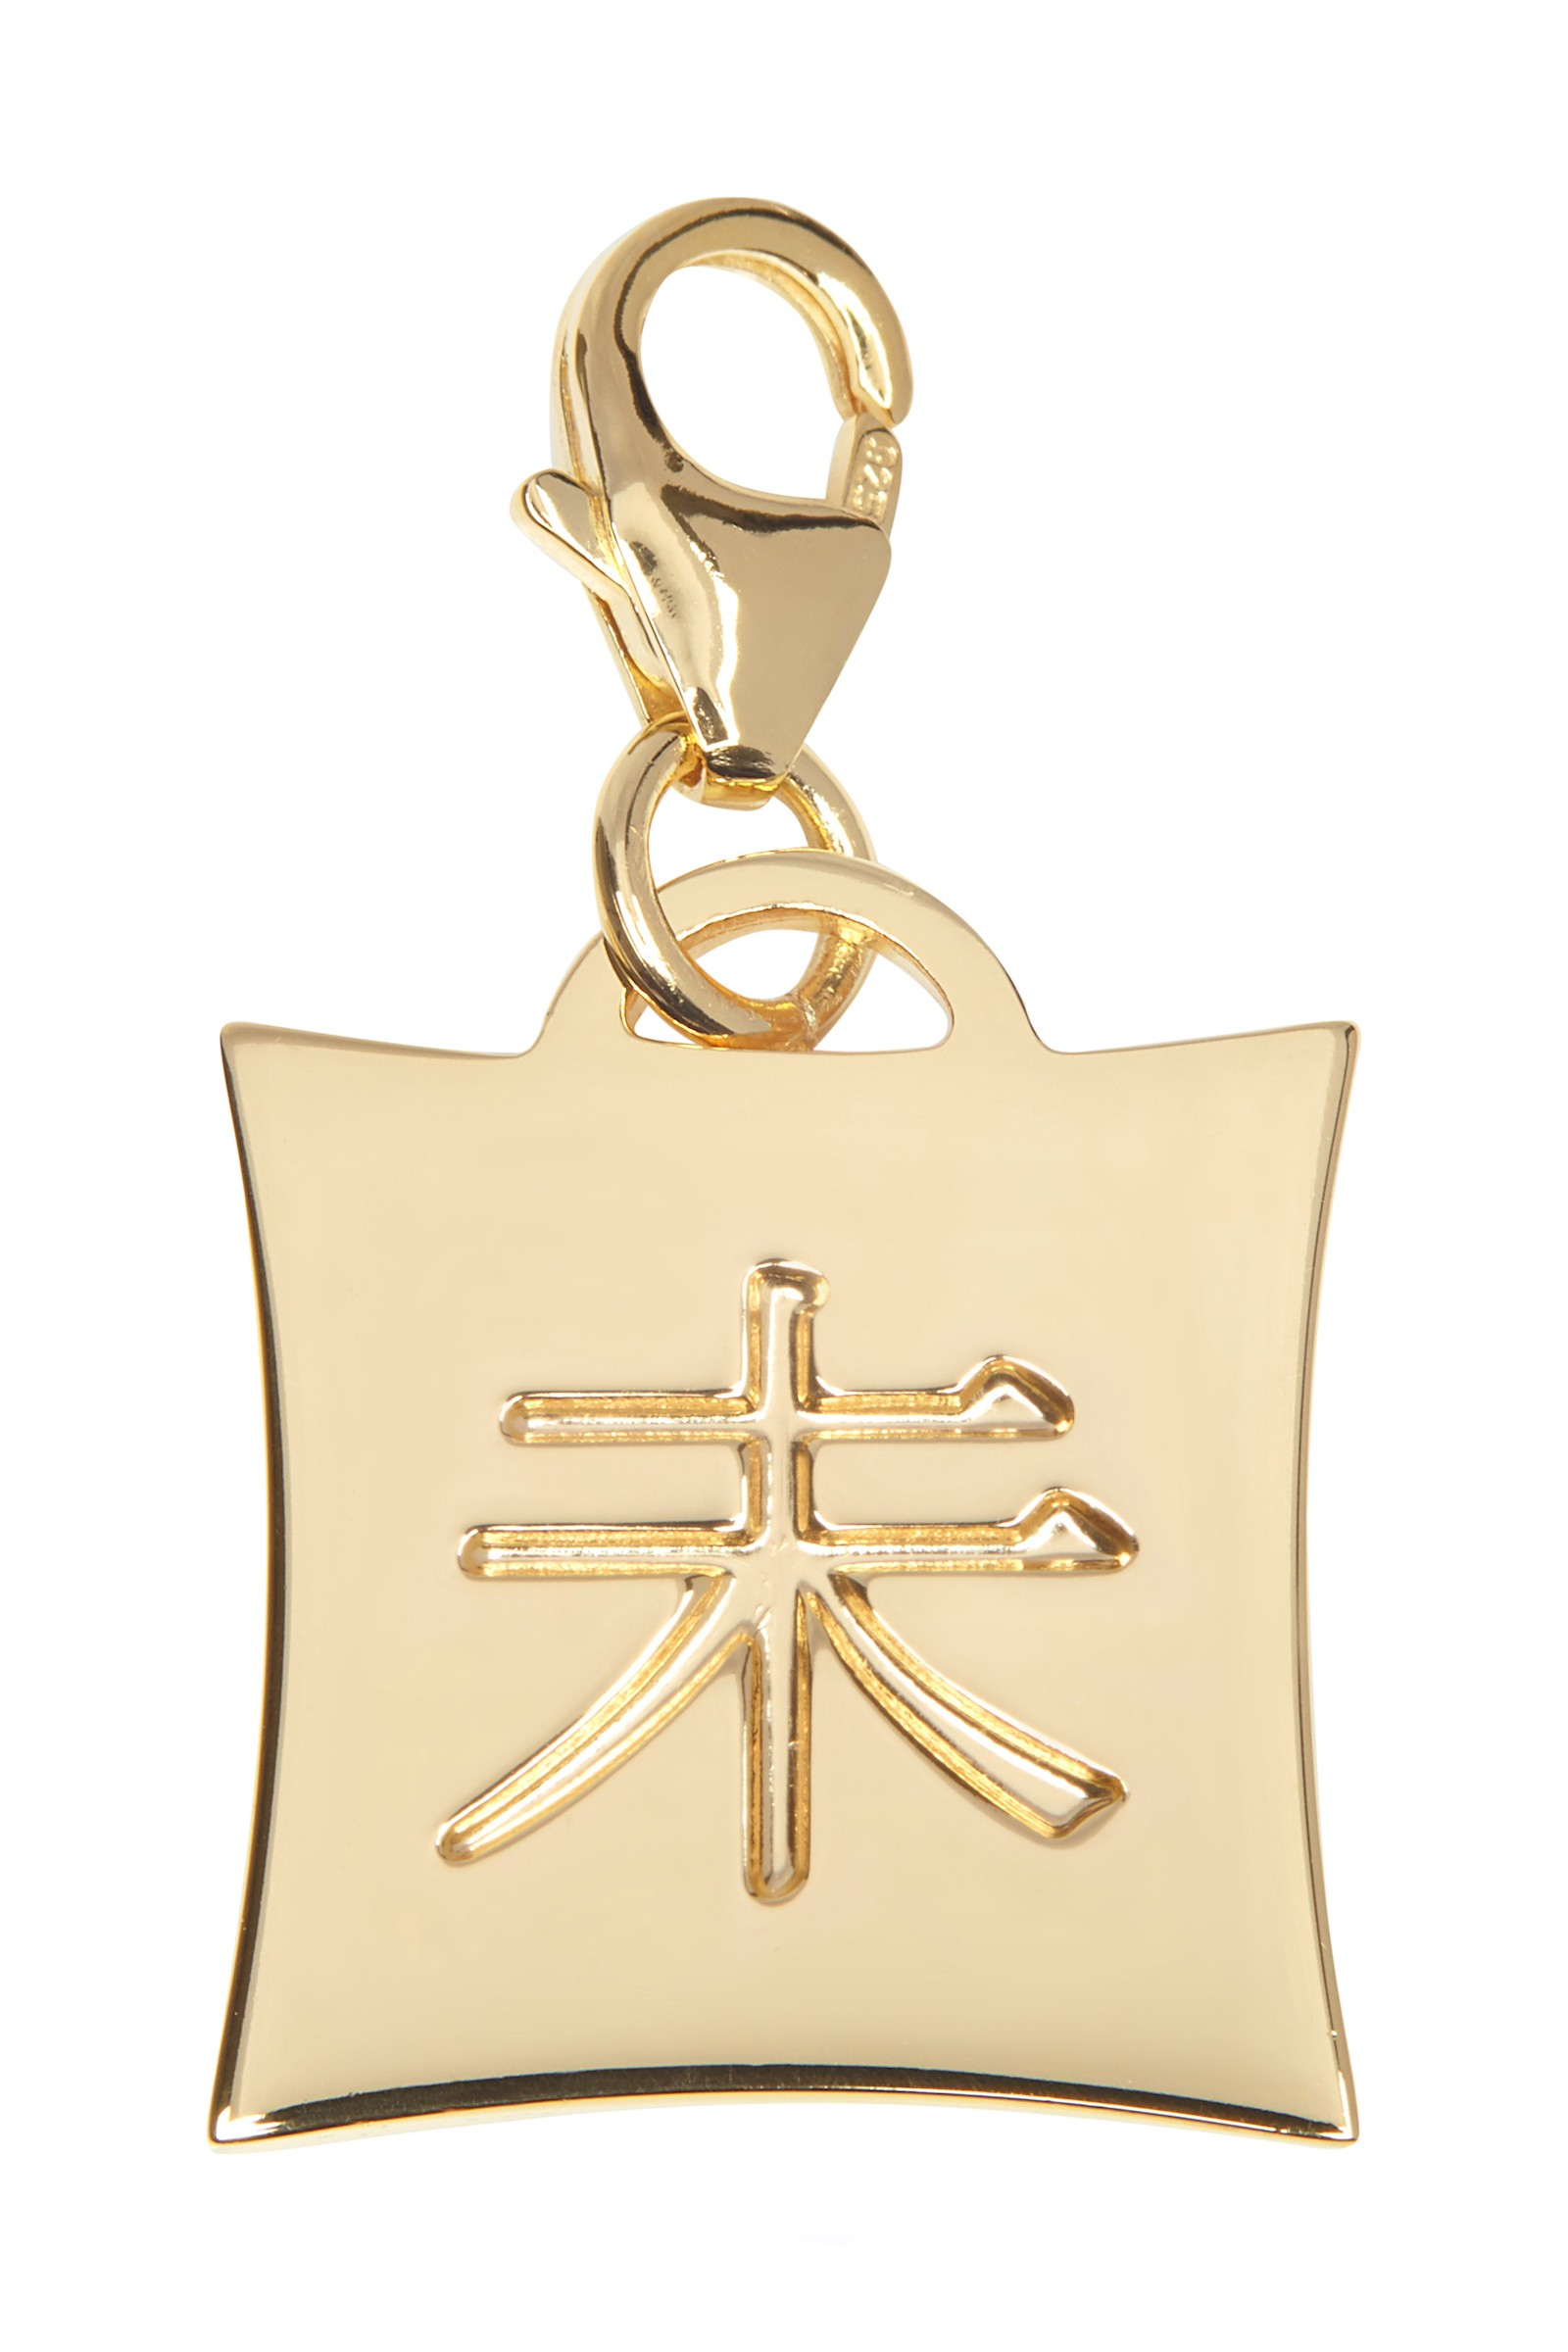 Japanese Star Sign Charm - Sheep 18KT Gold Plated